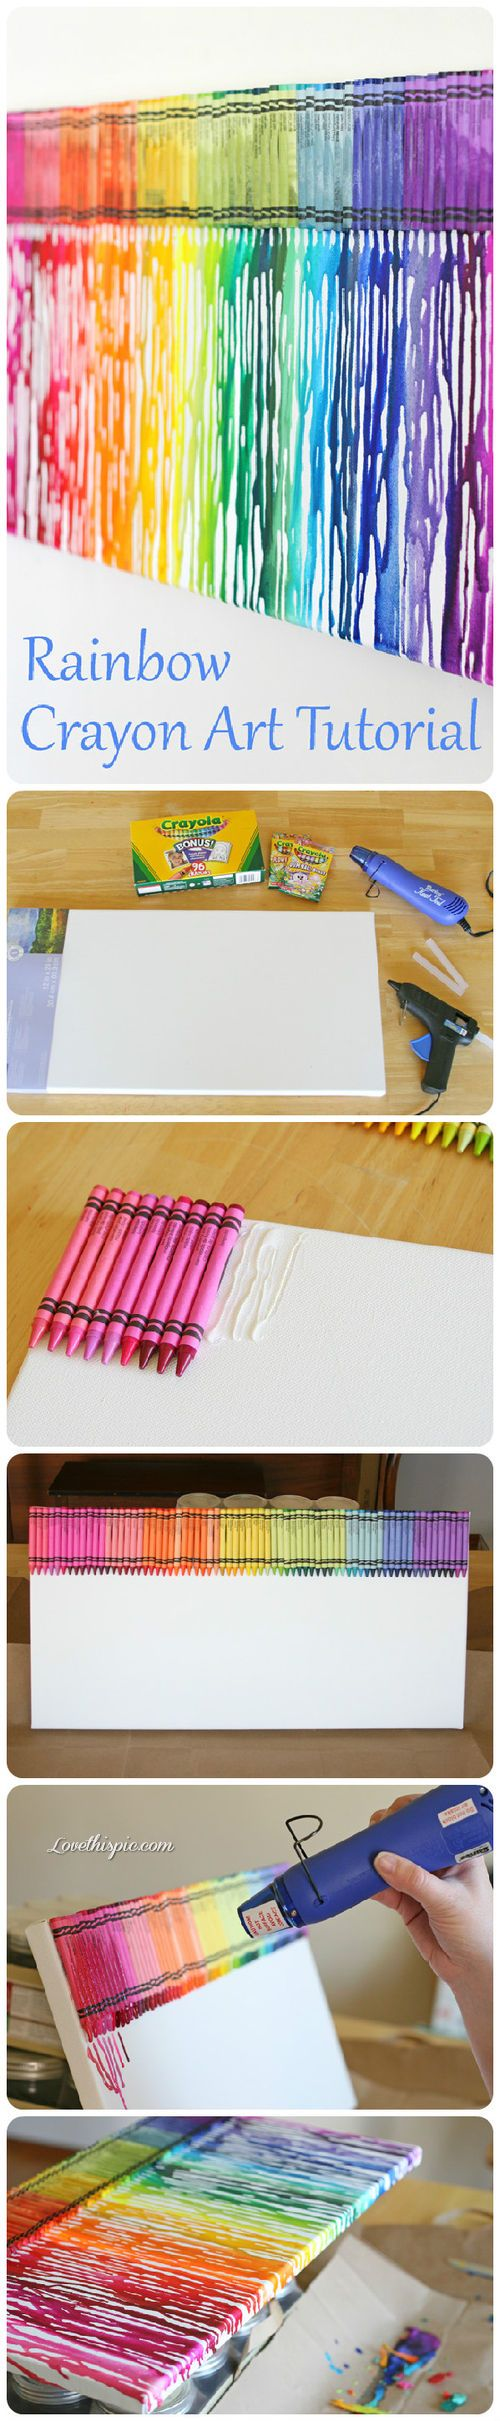 DIY :rainbow art crayon tutorial colorful crayons diy crafts home made easy crafts craft idea crafts: Diy Crafts, Rainbow Art, Craft Ideas, Crayon Art